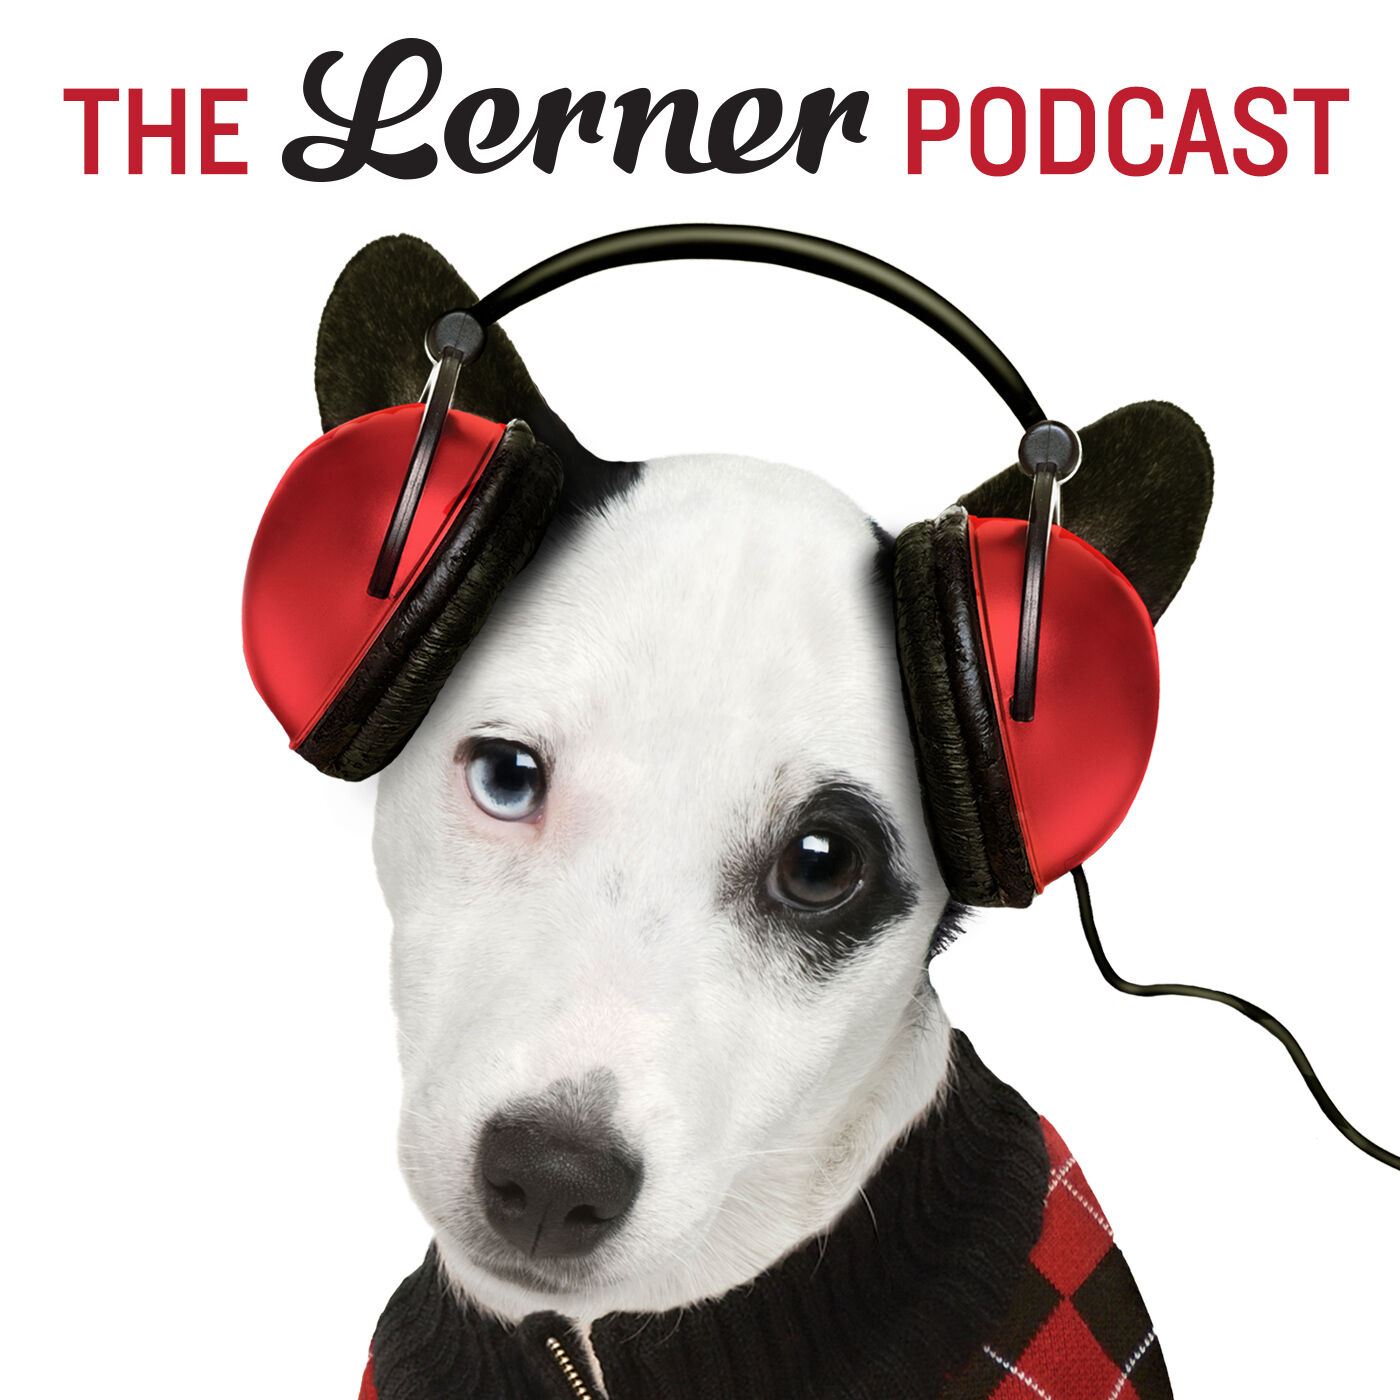 The Lerner Podcast podcast show image